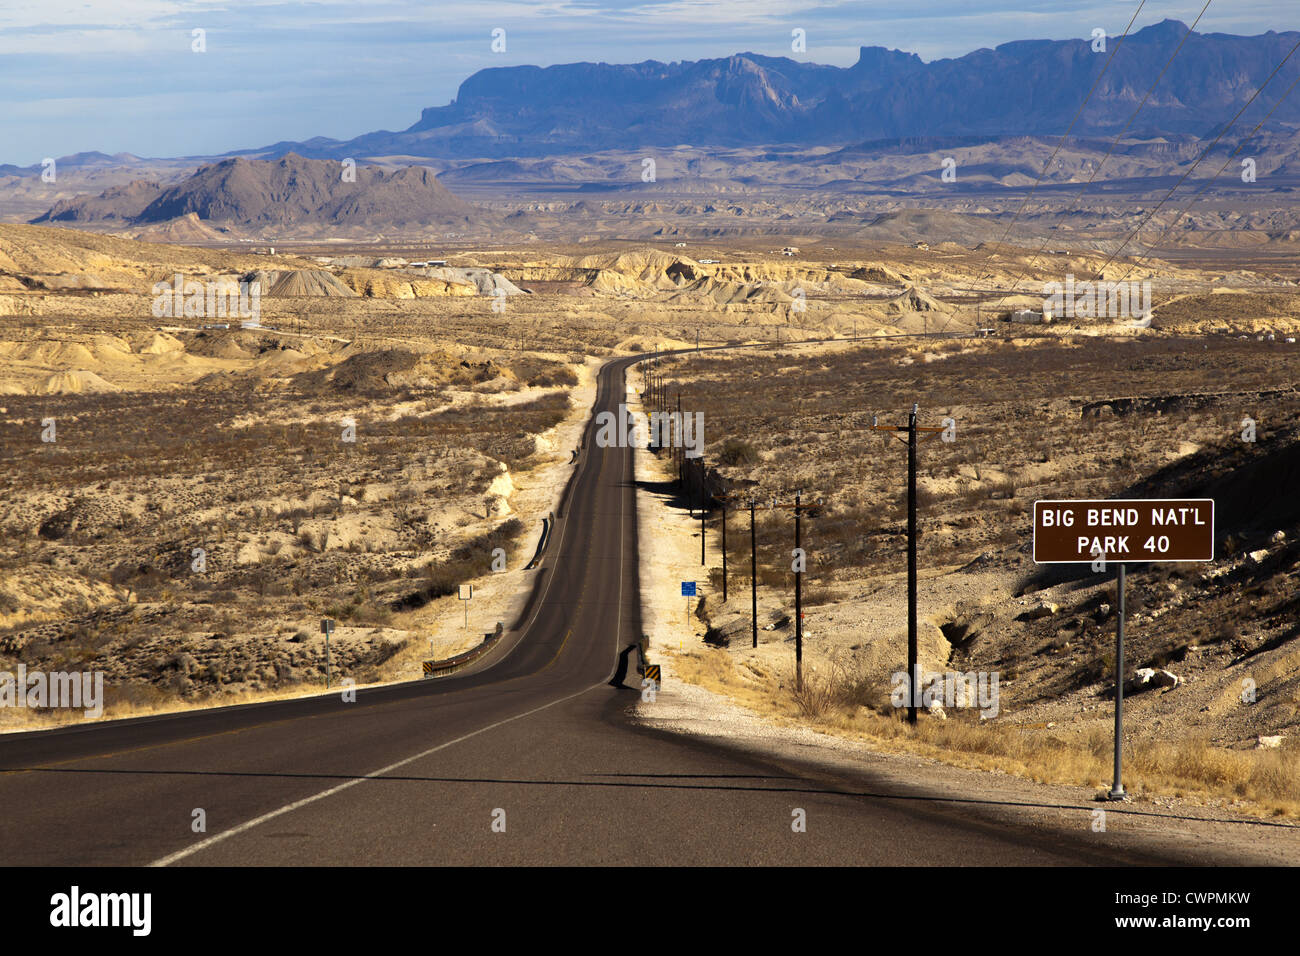 Long straight desert road vanshing into the distance leading to Big Bend National Park, Texas, United States Stock Photo